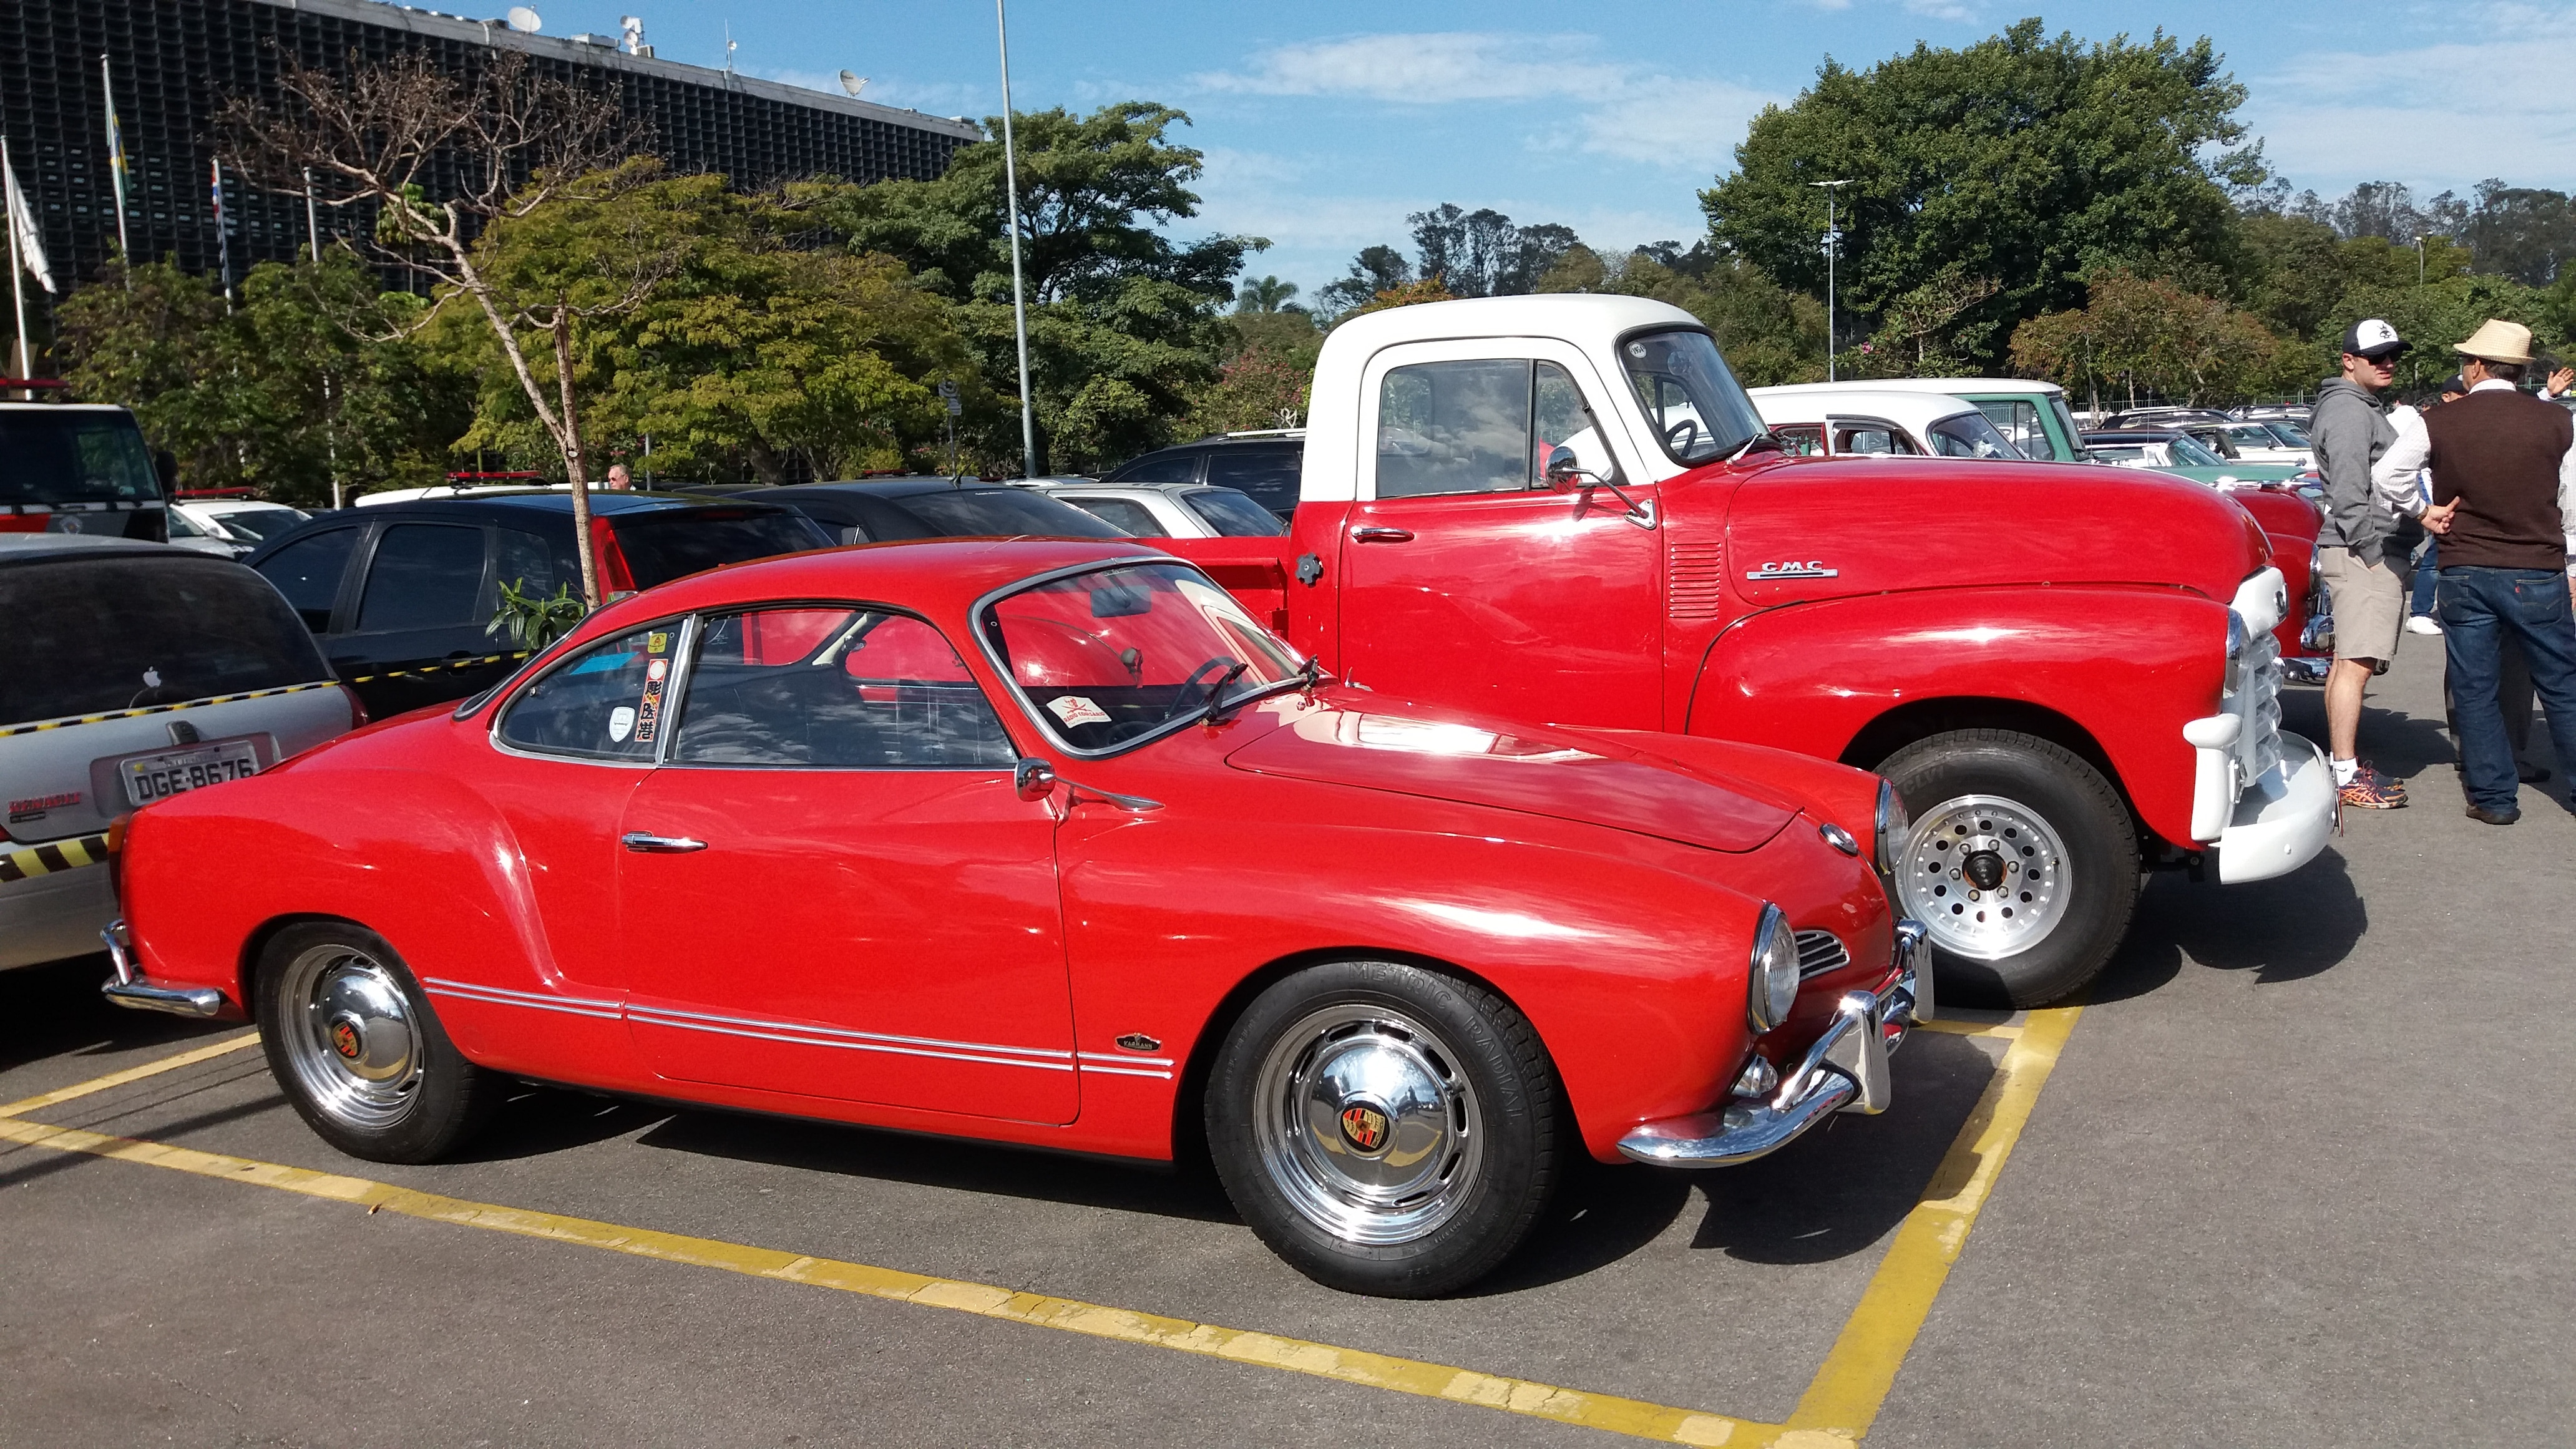 Karmann-Ghia e picape GMC